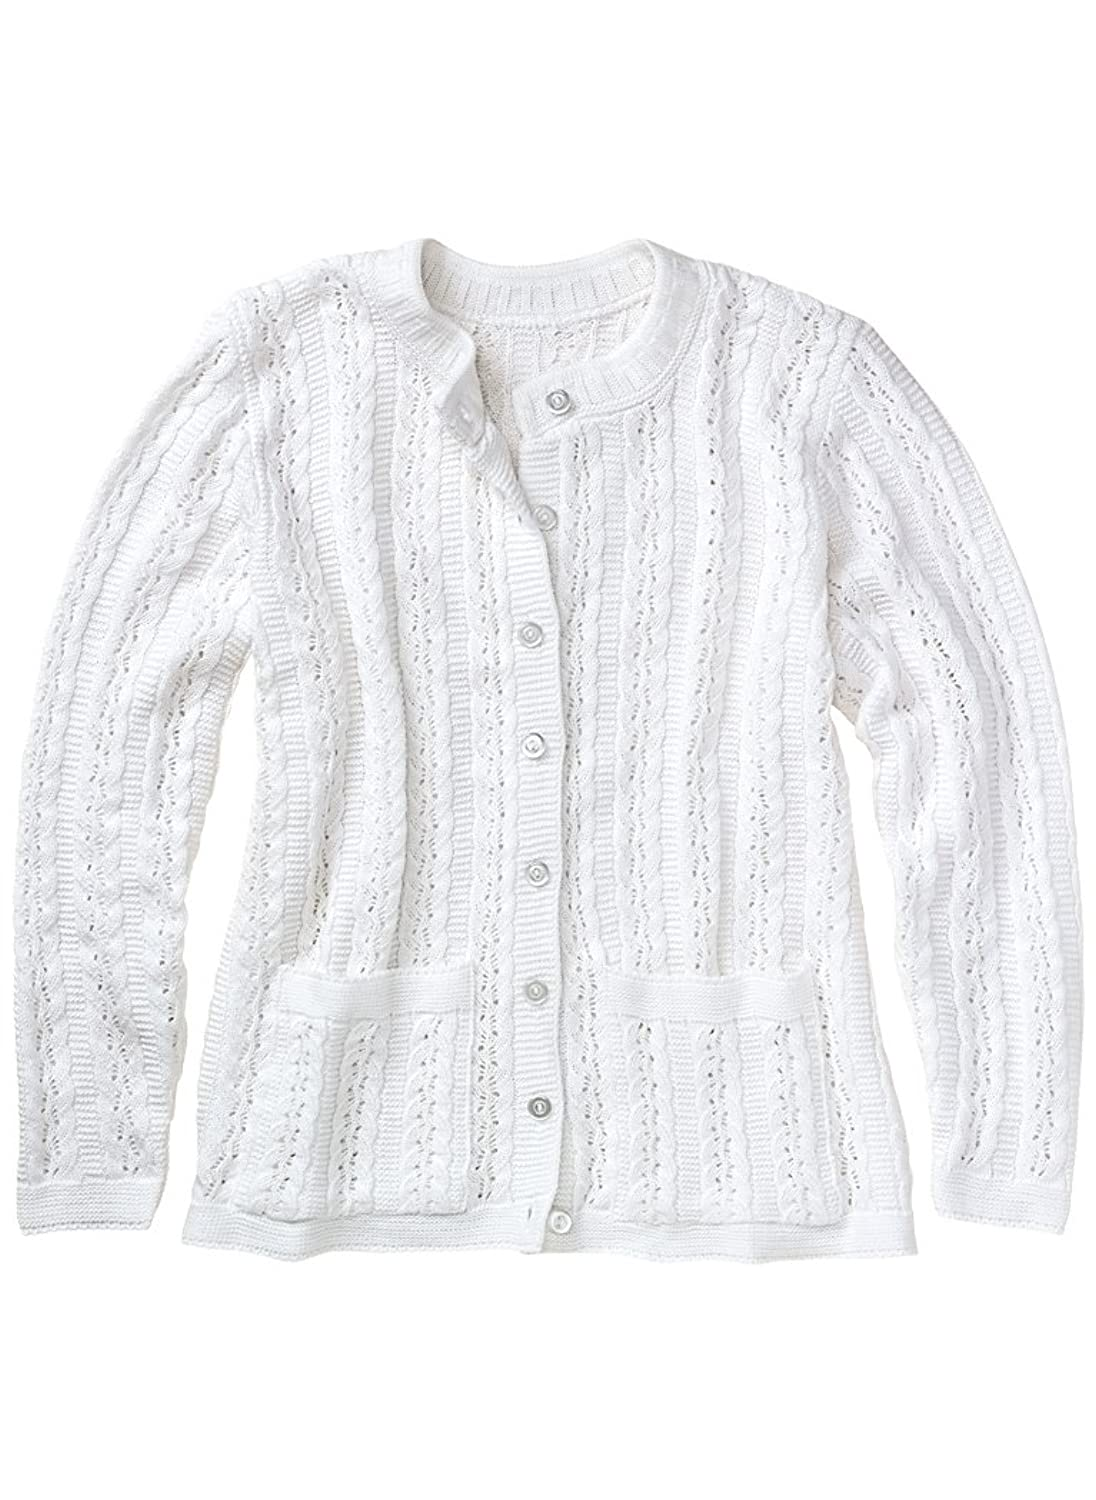 What Did Women Wear in the 1950s? Cable Stitch Cardigan $29.99 AT vintagedancer.com